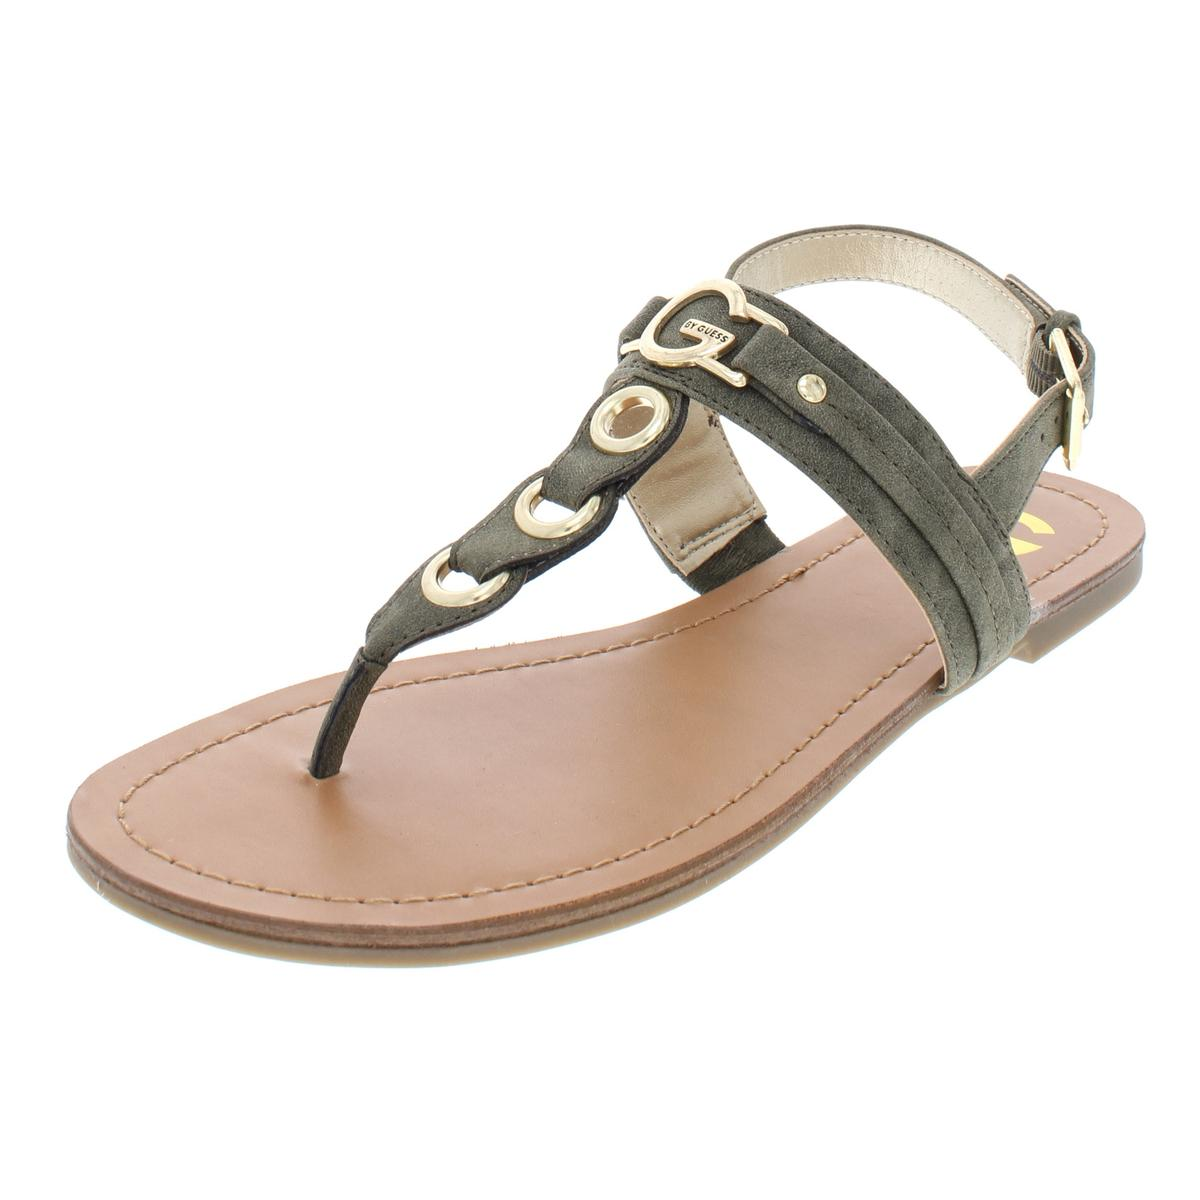 81c643deb46 Details about G by Guess Womens Lesha Green Flat Sandals Shoes 7 Medium  (B